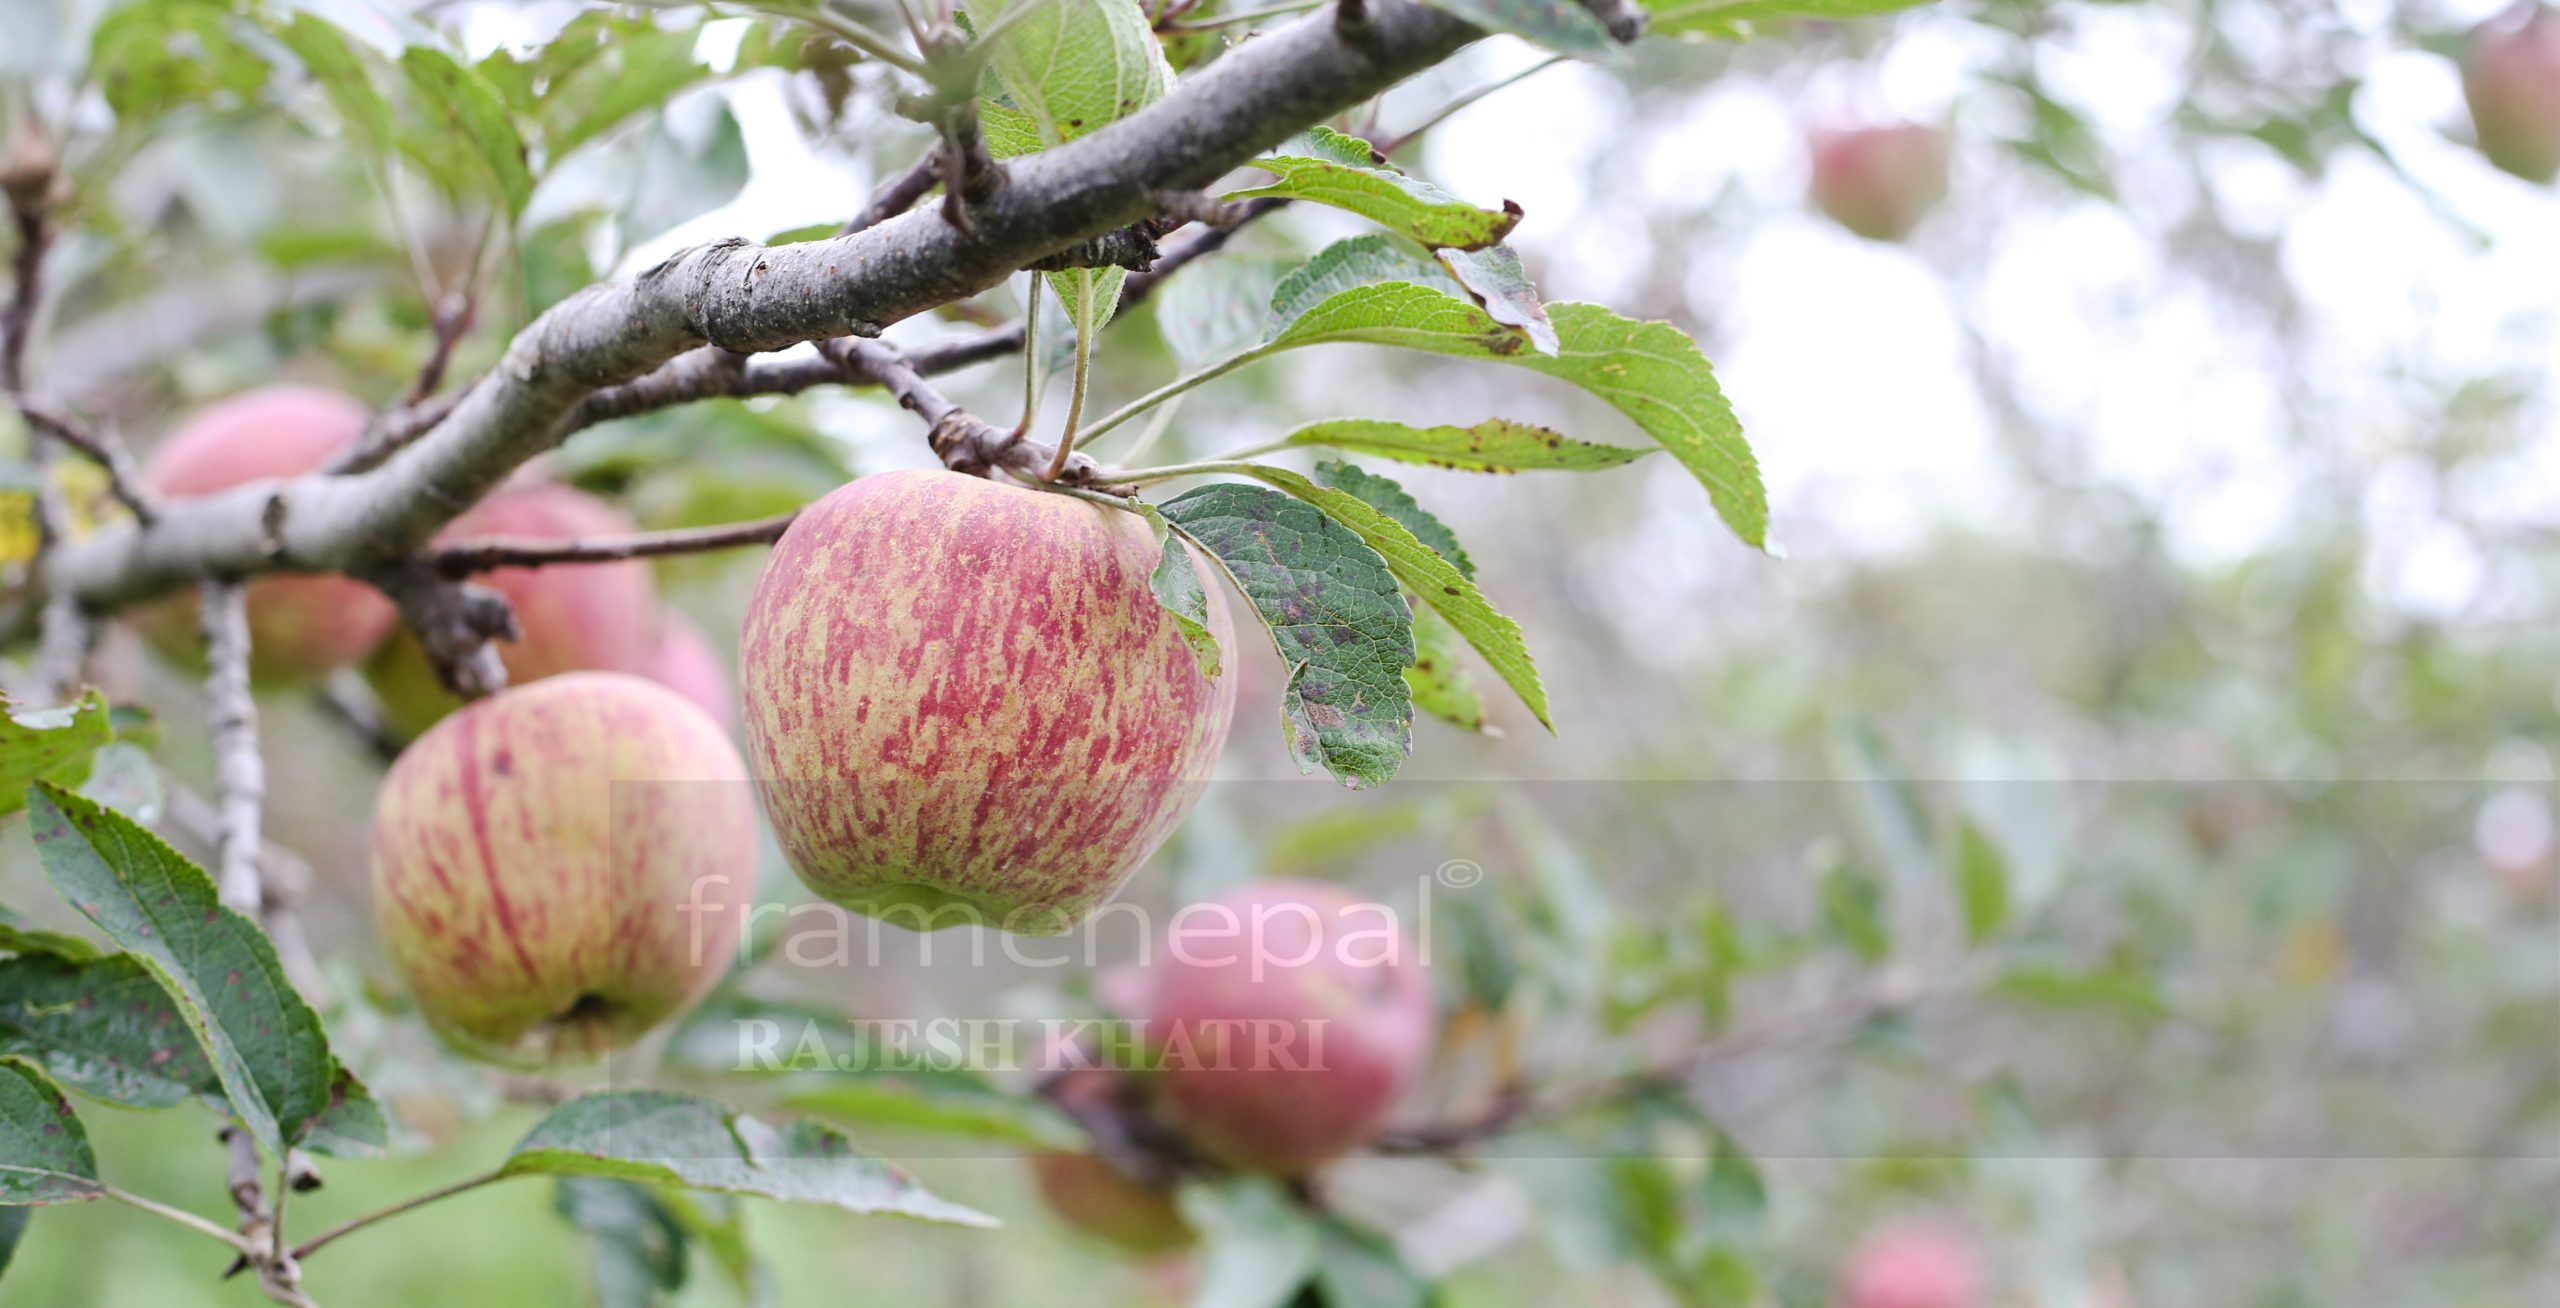 Apple farm in Rolpa,Apple farm Best Images Apple farm, Agriculture in Nepal,apple farm in nepal Apple farm in rolpa,apple production area in nepal map, apple farming in jhapa,bhratang apple farm,grapes farming in nepal,mustang apple farm,nepal apple garden,apple farm video, dragon fruit farming in nepal,